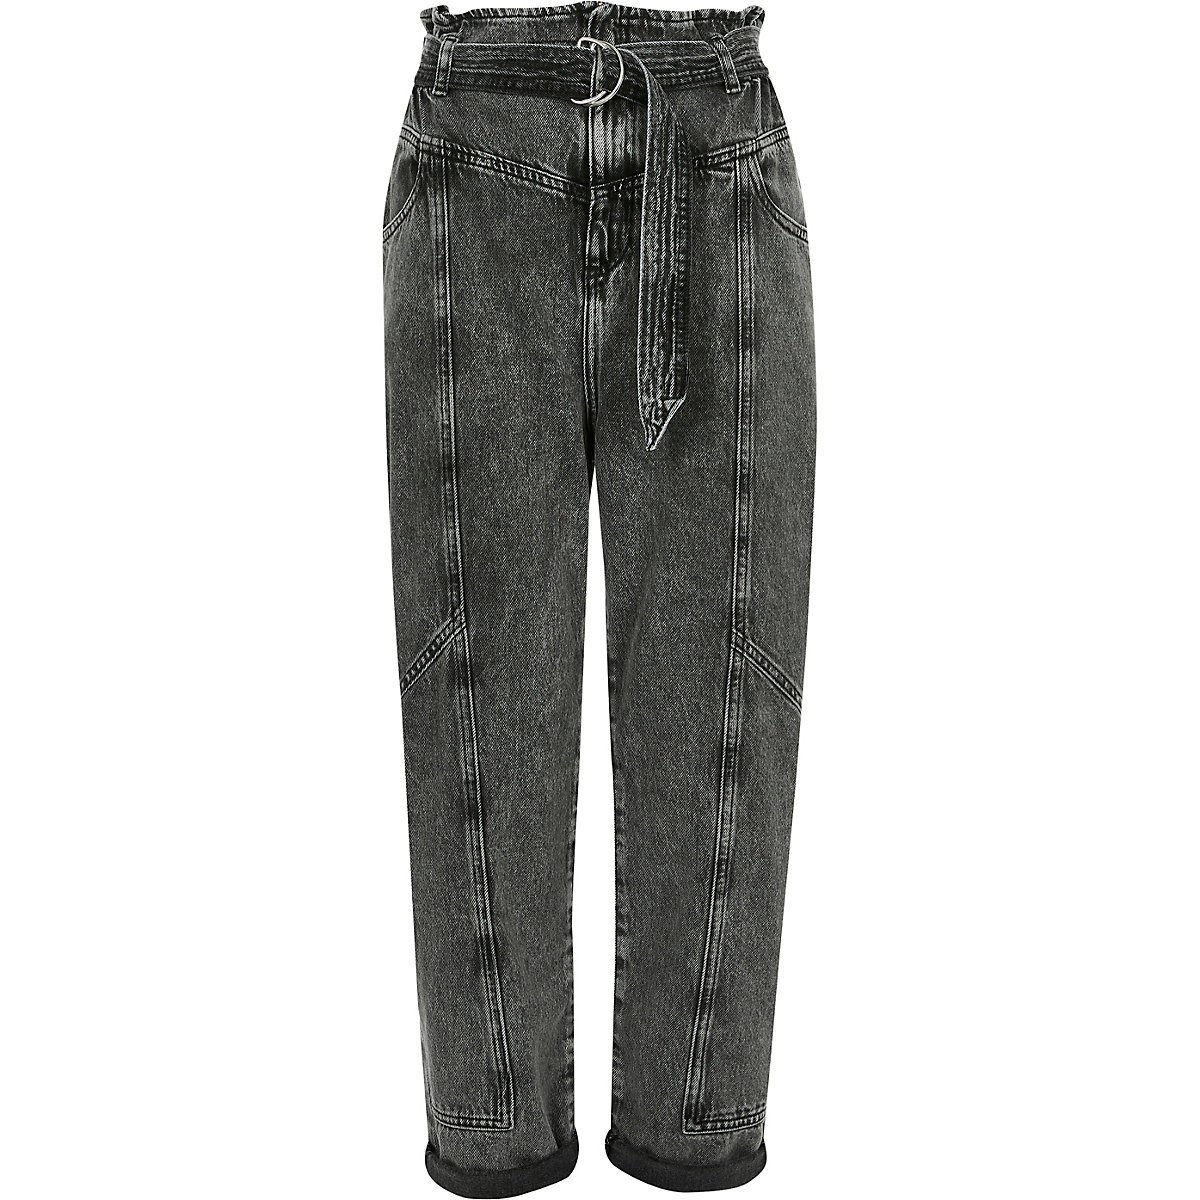 Petite grey paperbag waist belted jeans - Straight & Slim Jeans - Jeans - women